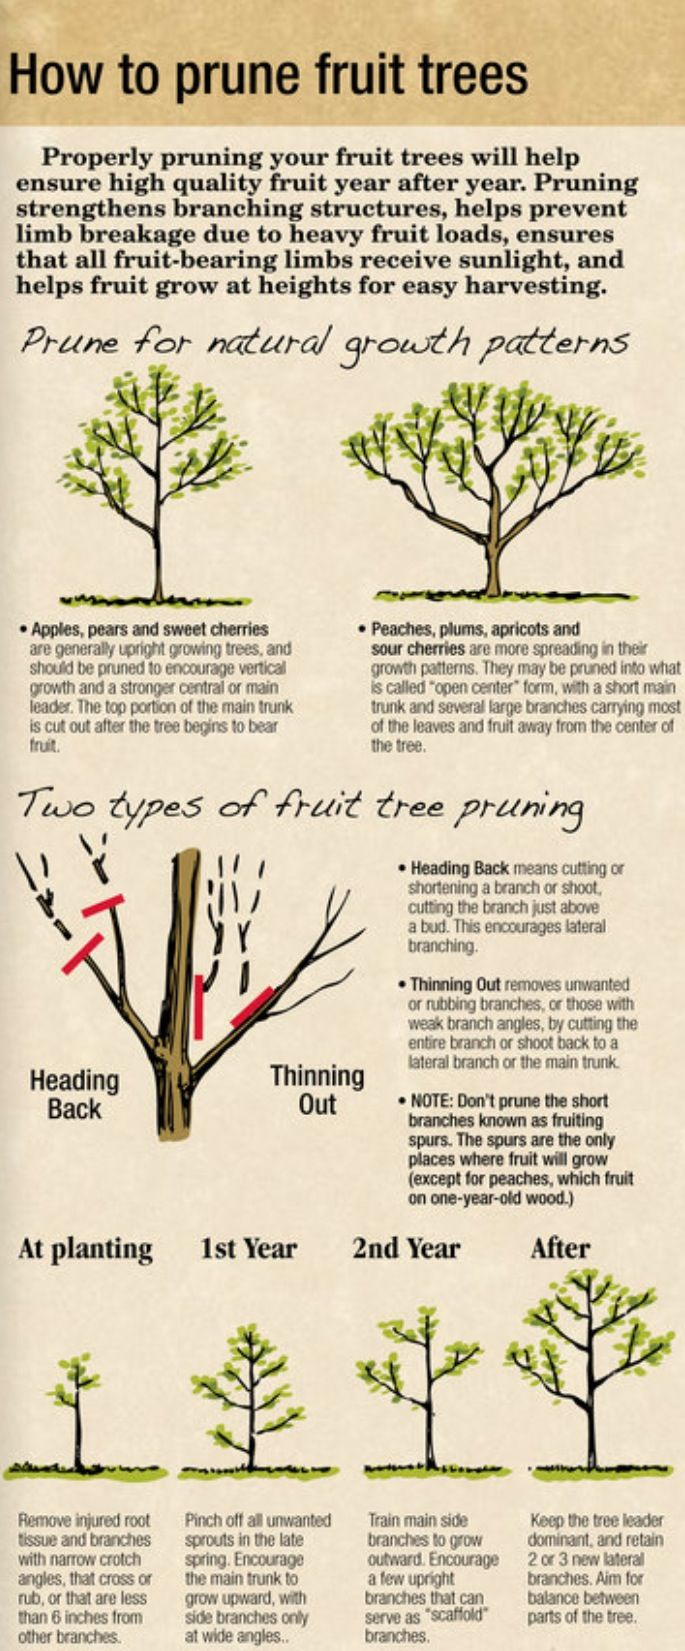 Edible Landscaping: How to Prune Fruit Trees infographic | Buy or build your Okanagan dream home today! Rural Land & Orchard Properties for sale. Contact our amazing Real Estate Agents at Century 21 Executives Realty Ltd for a listing of available lots and property developments. Kelowna, BC.